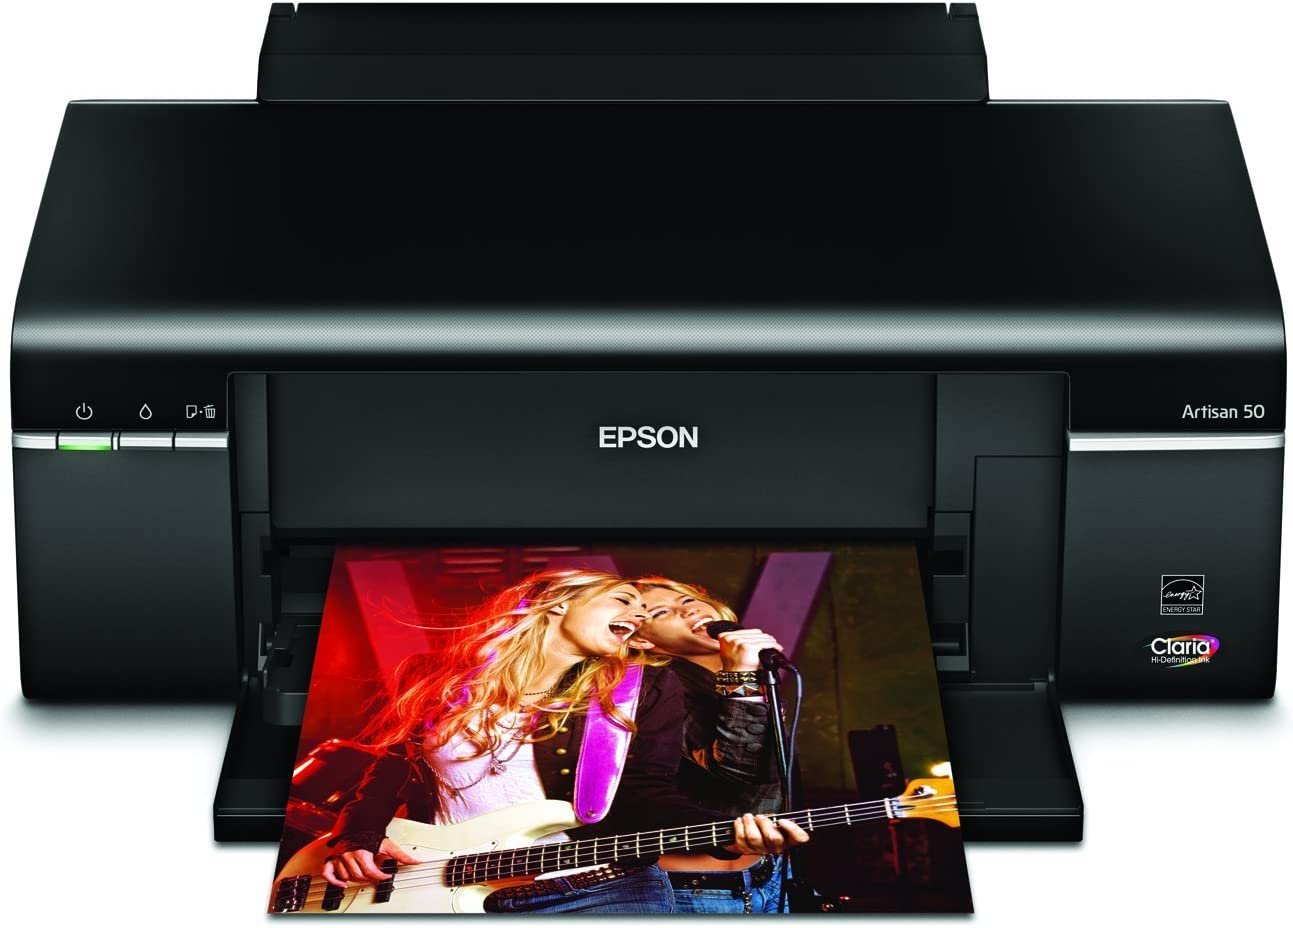 Epson Artisan 50 Color Inkjet Printer (C11CA45201)